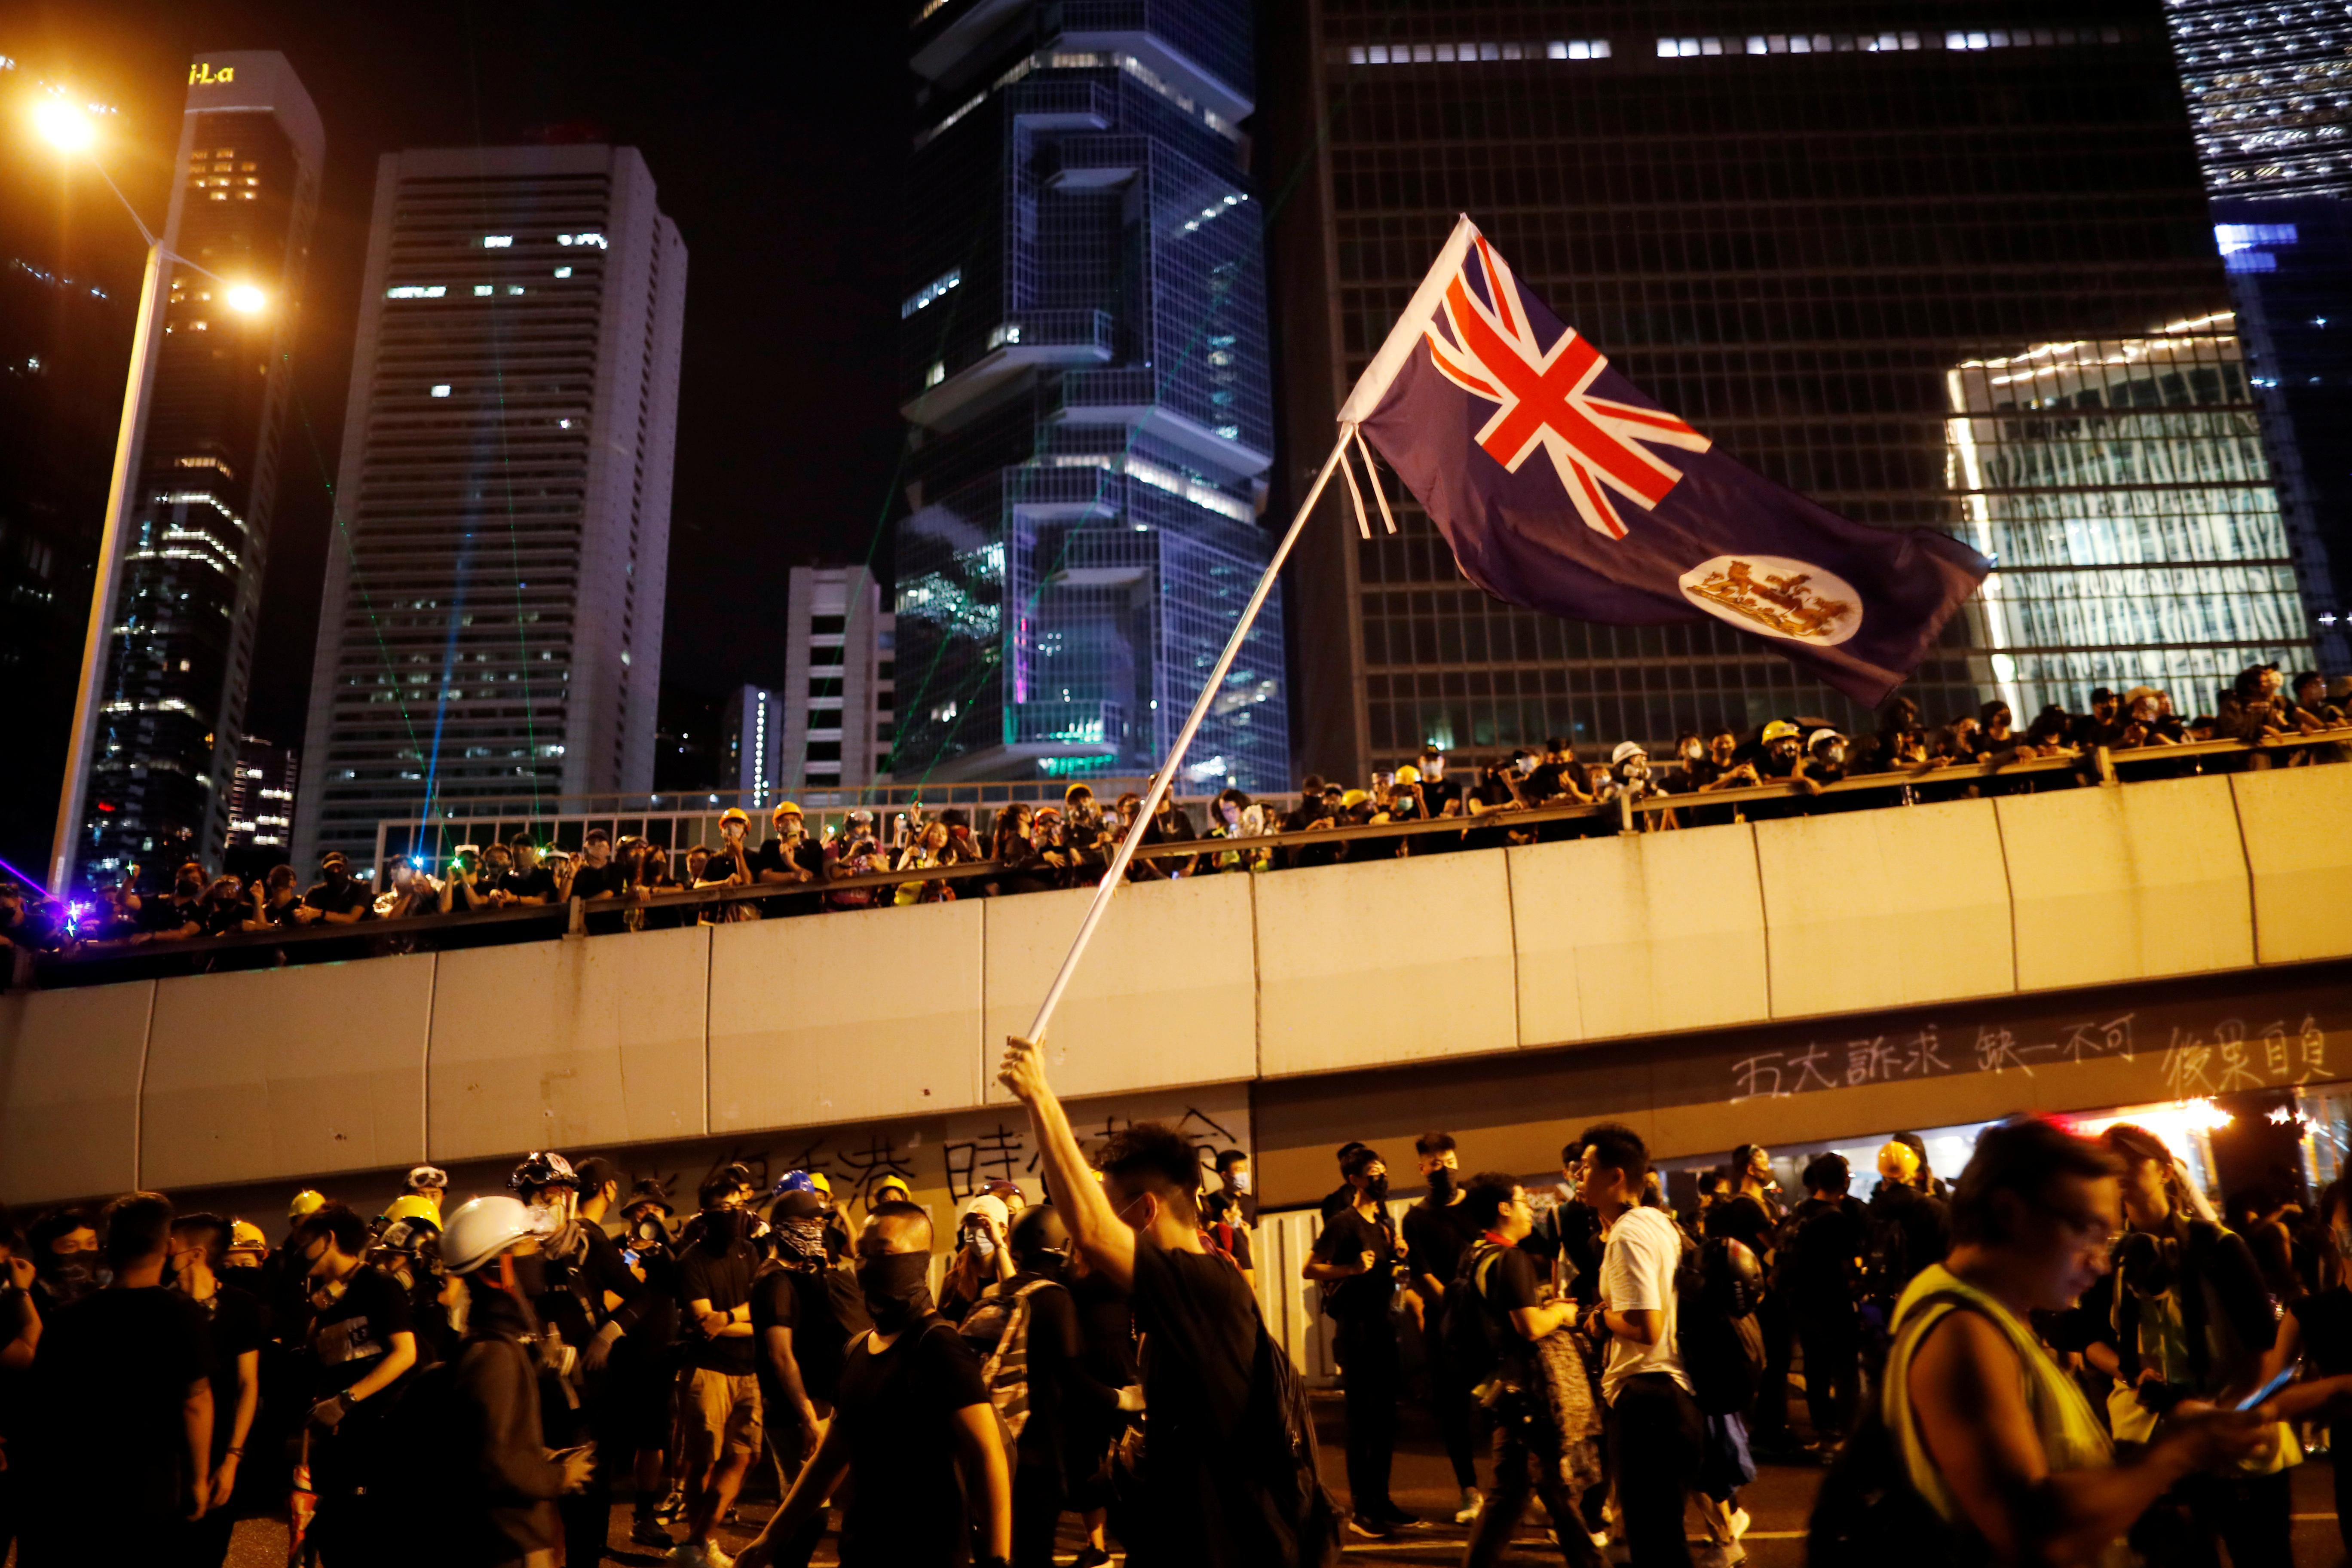 Hong Kong protesters throng streets peacefully in pouring rain